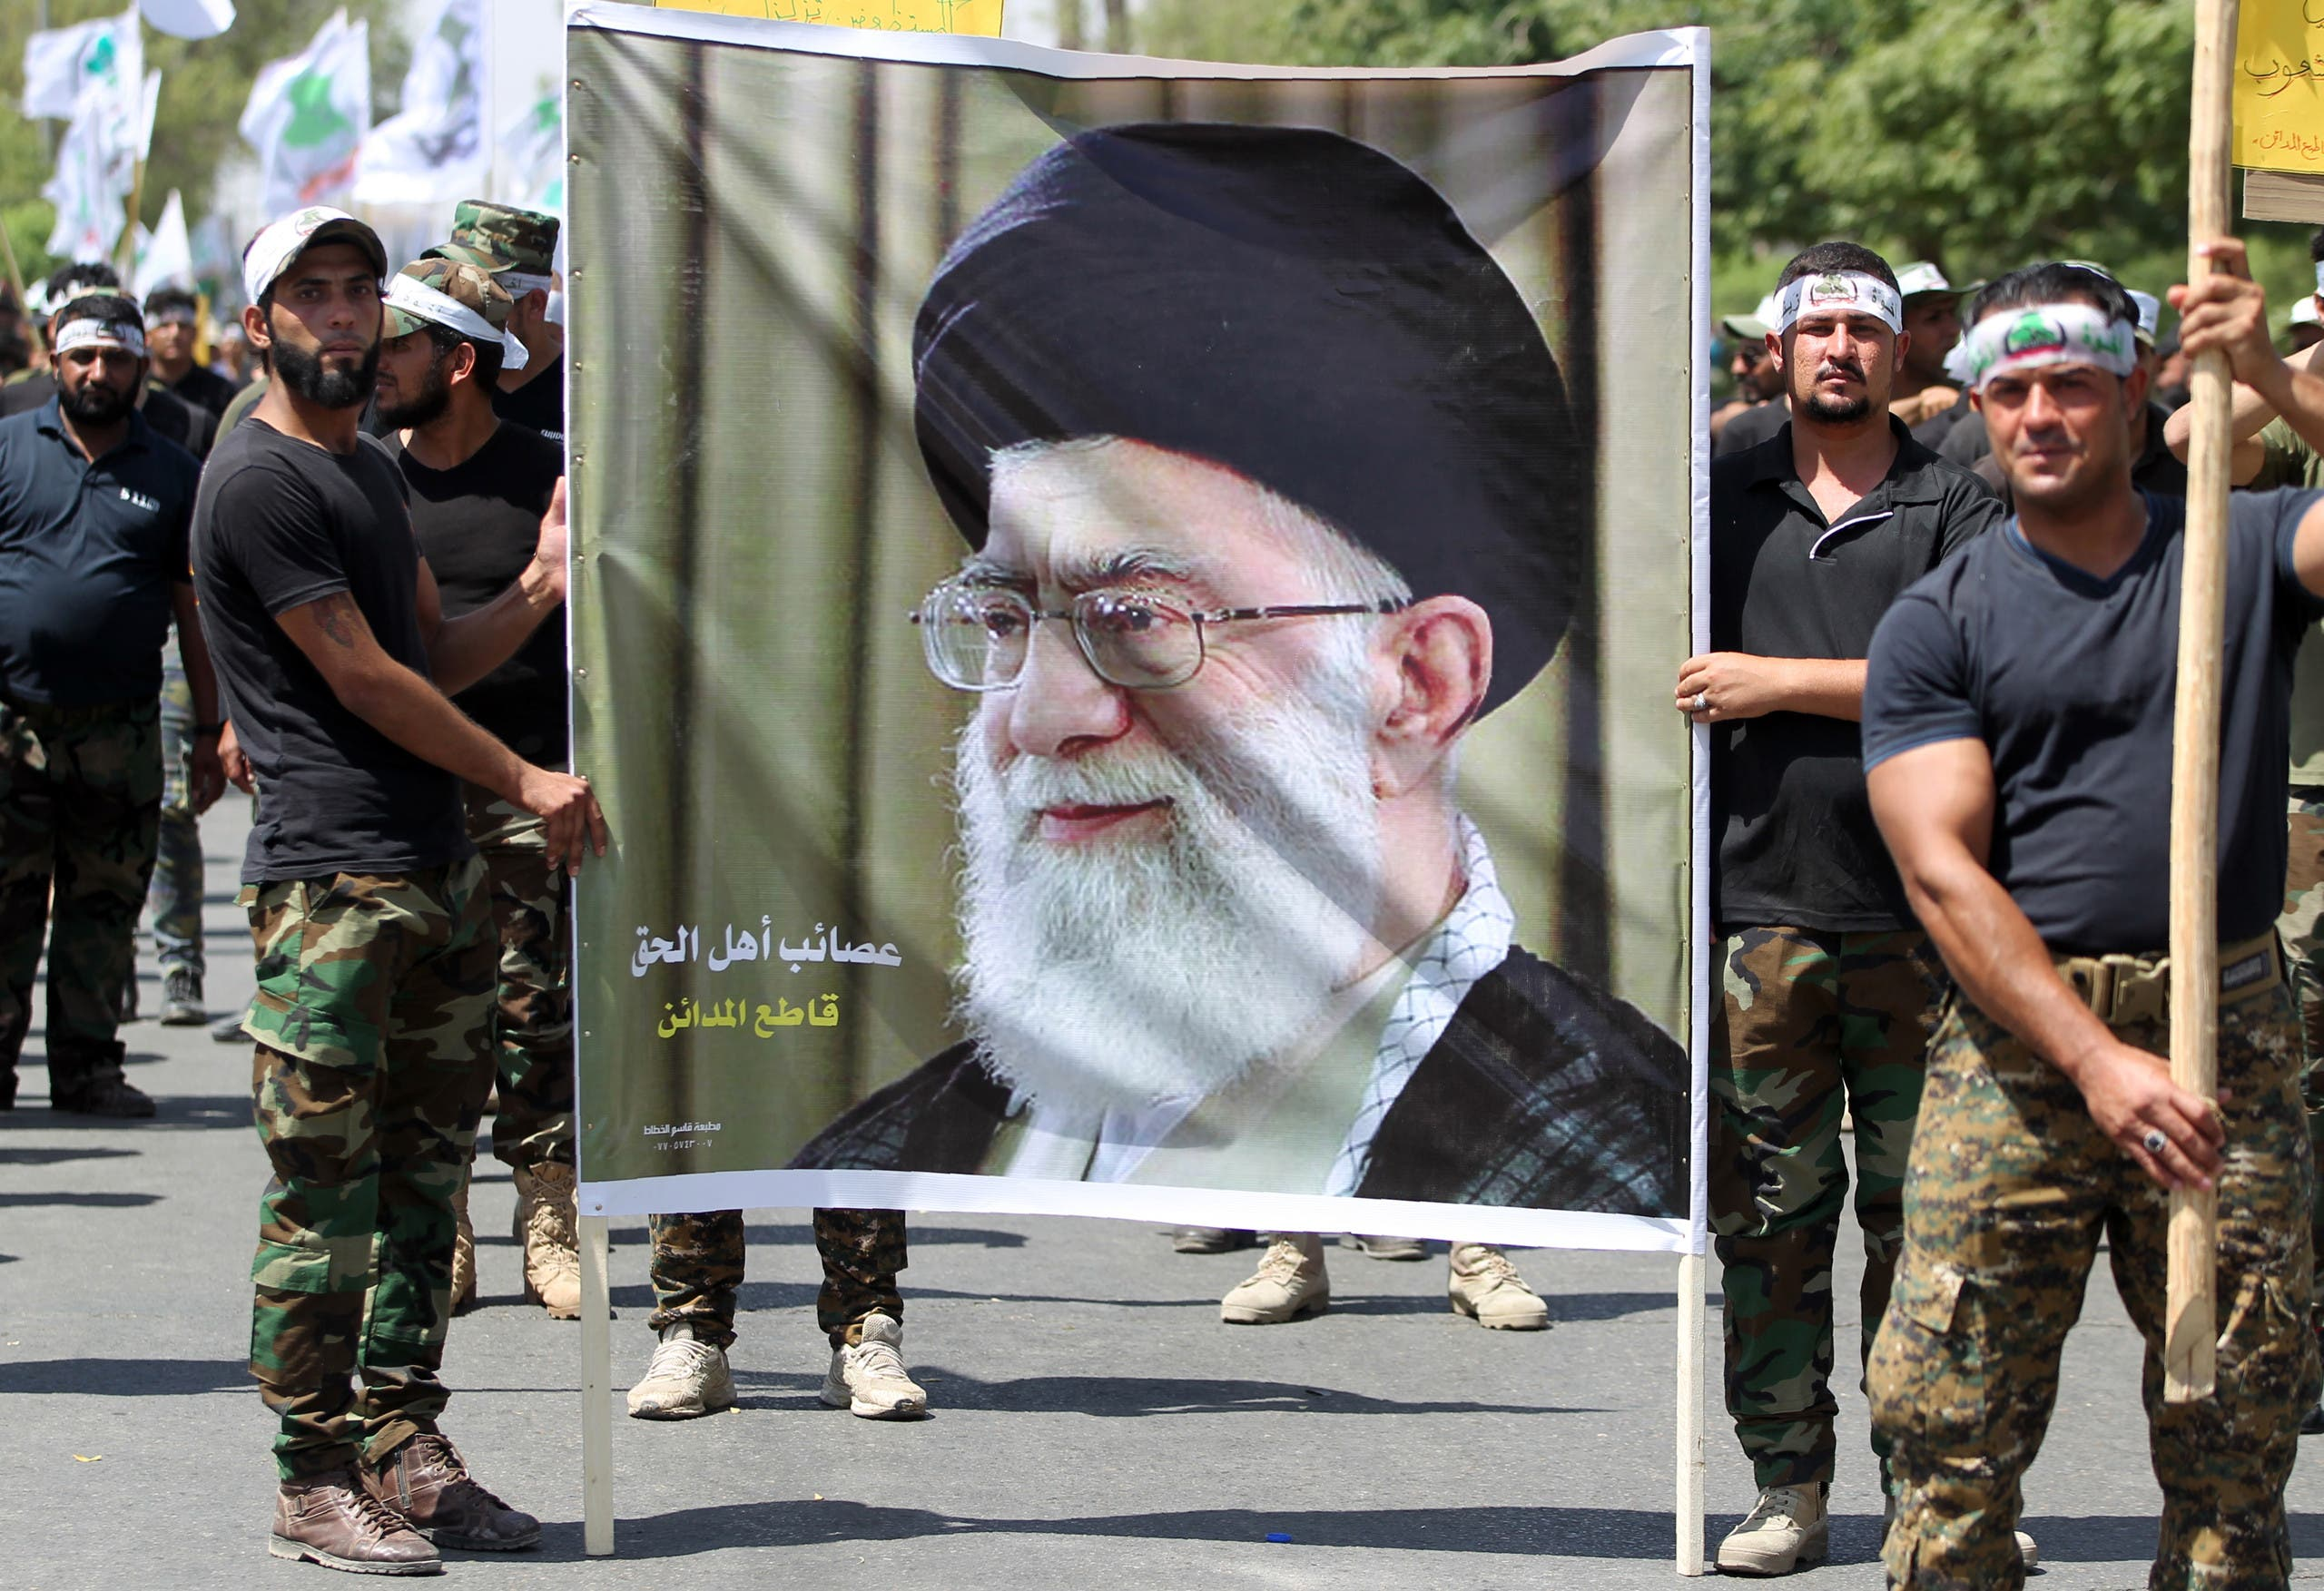 Iraqi pro-government forces hold a poster bearing a portrait of Iran's supreme leader Ayatollah Ali Khamenei as they take part in a parade marking al-Quds Day in Baghdad, on July 1, 2016. (AFP)